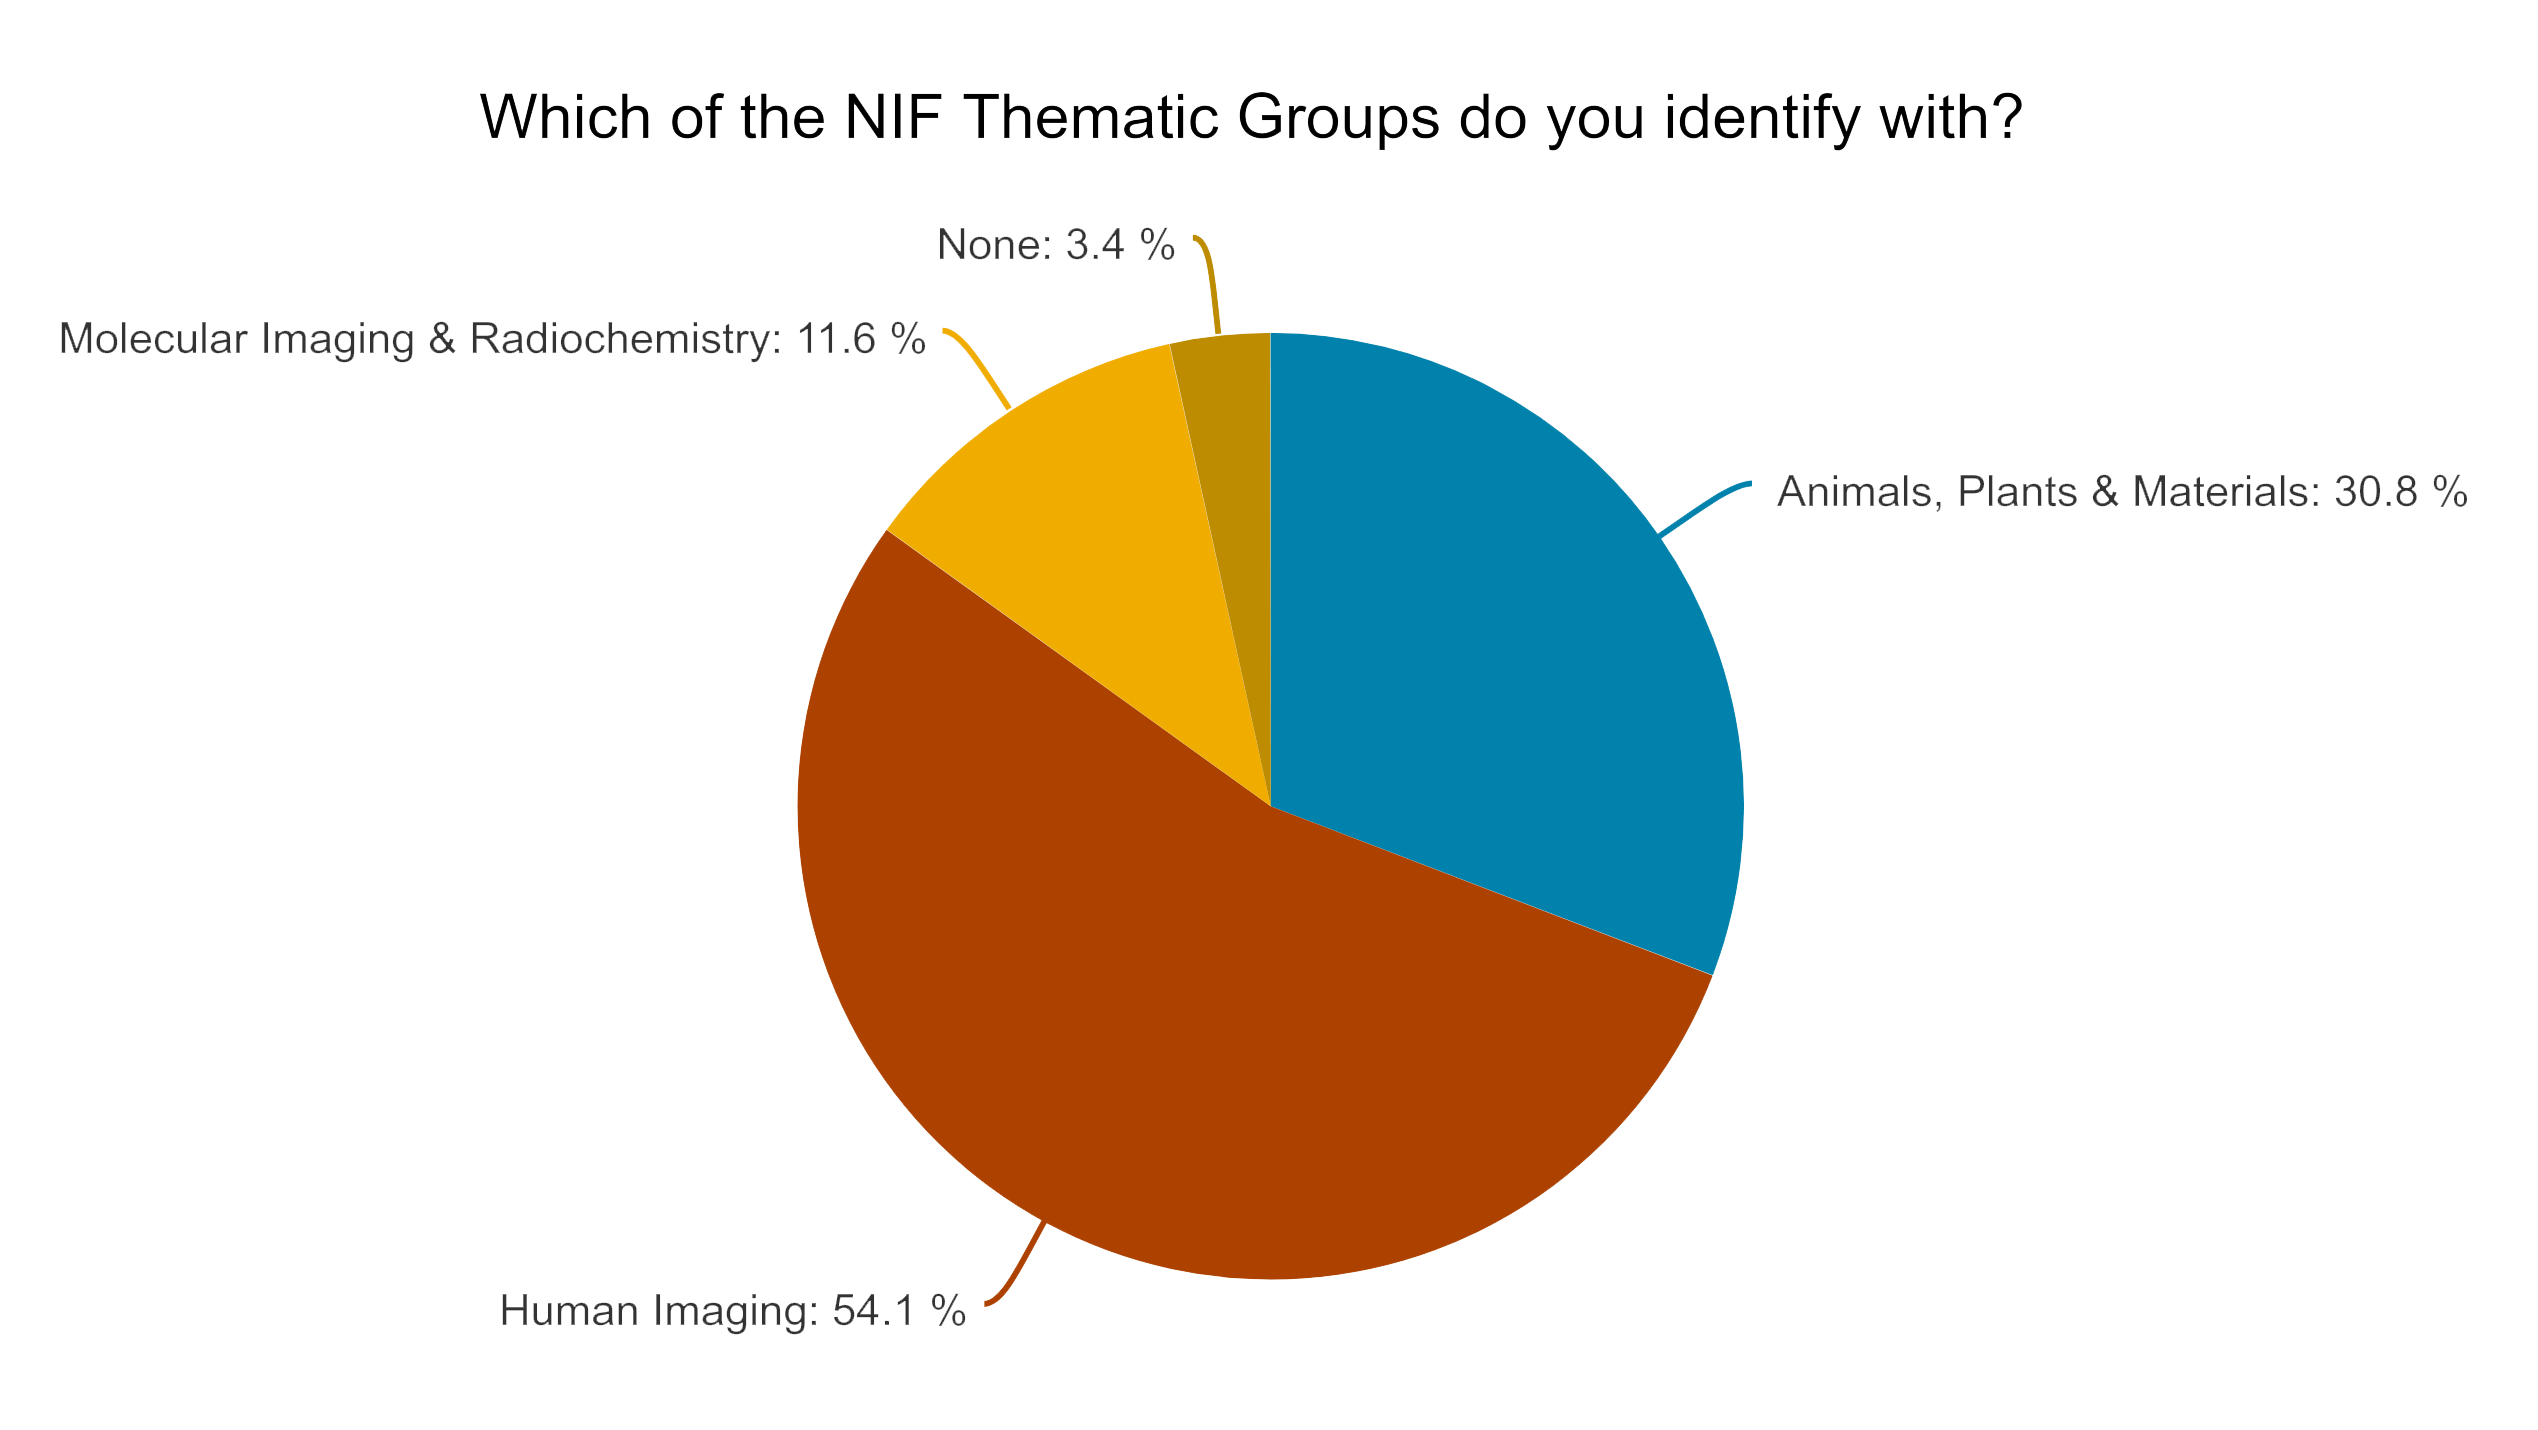 Pie chart showing 54% of users identify with the human imaging theme